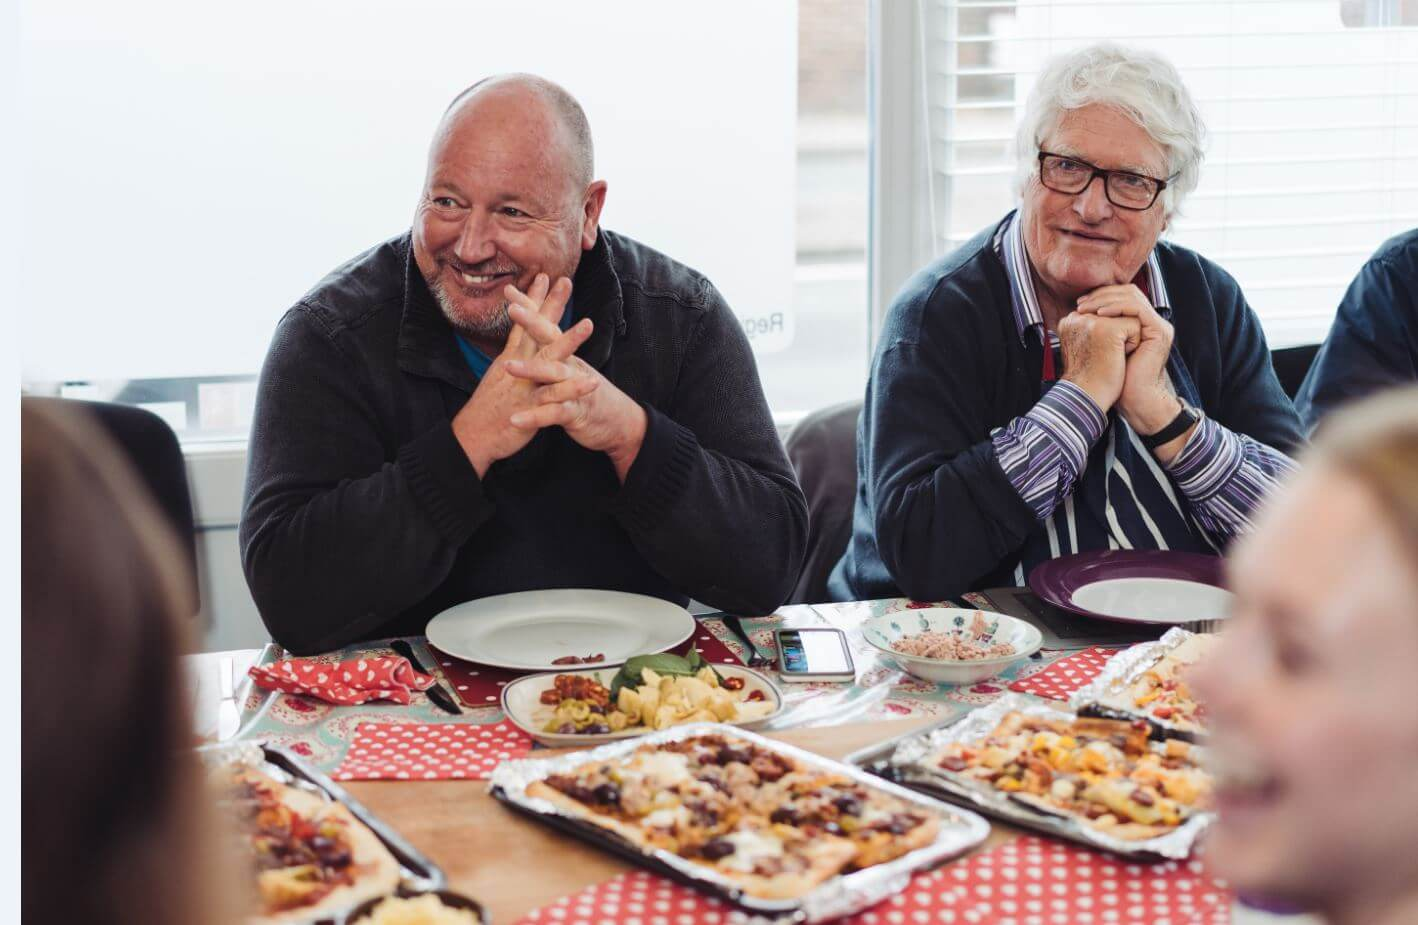 Two older white men sit at a colorful table laid with food, their hands clasped by their faces.